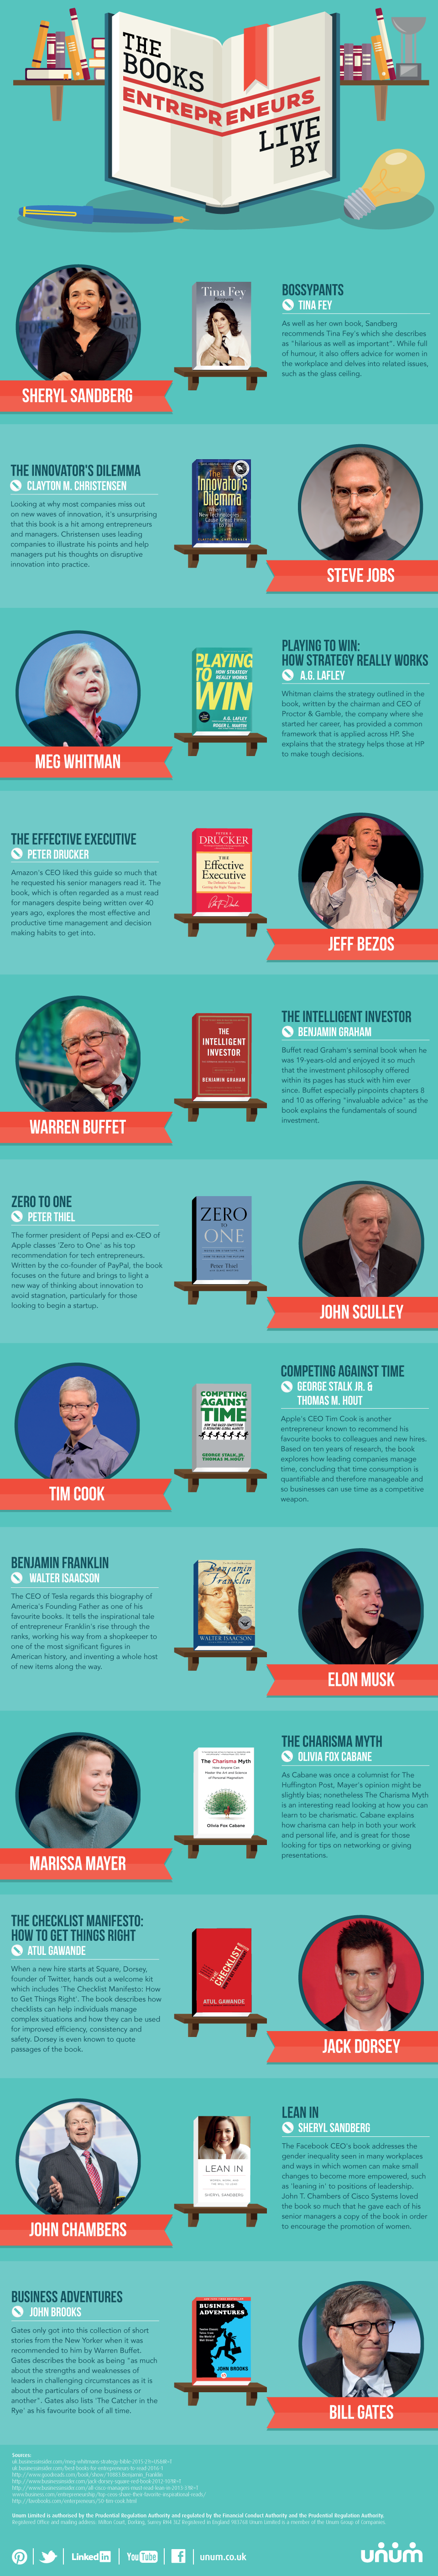 Infographic: 12 books entrepreneurs live by